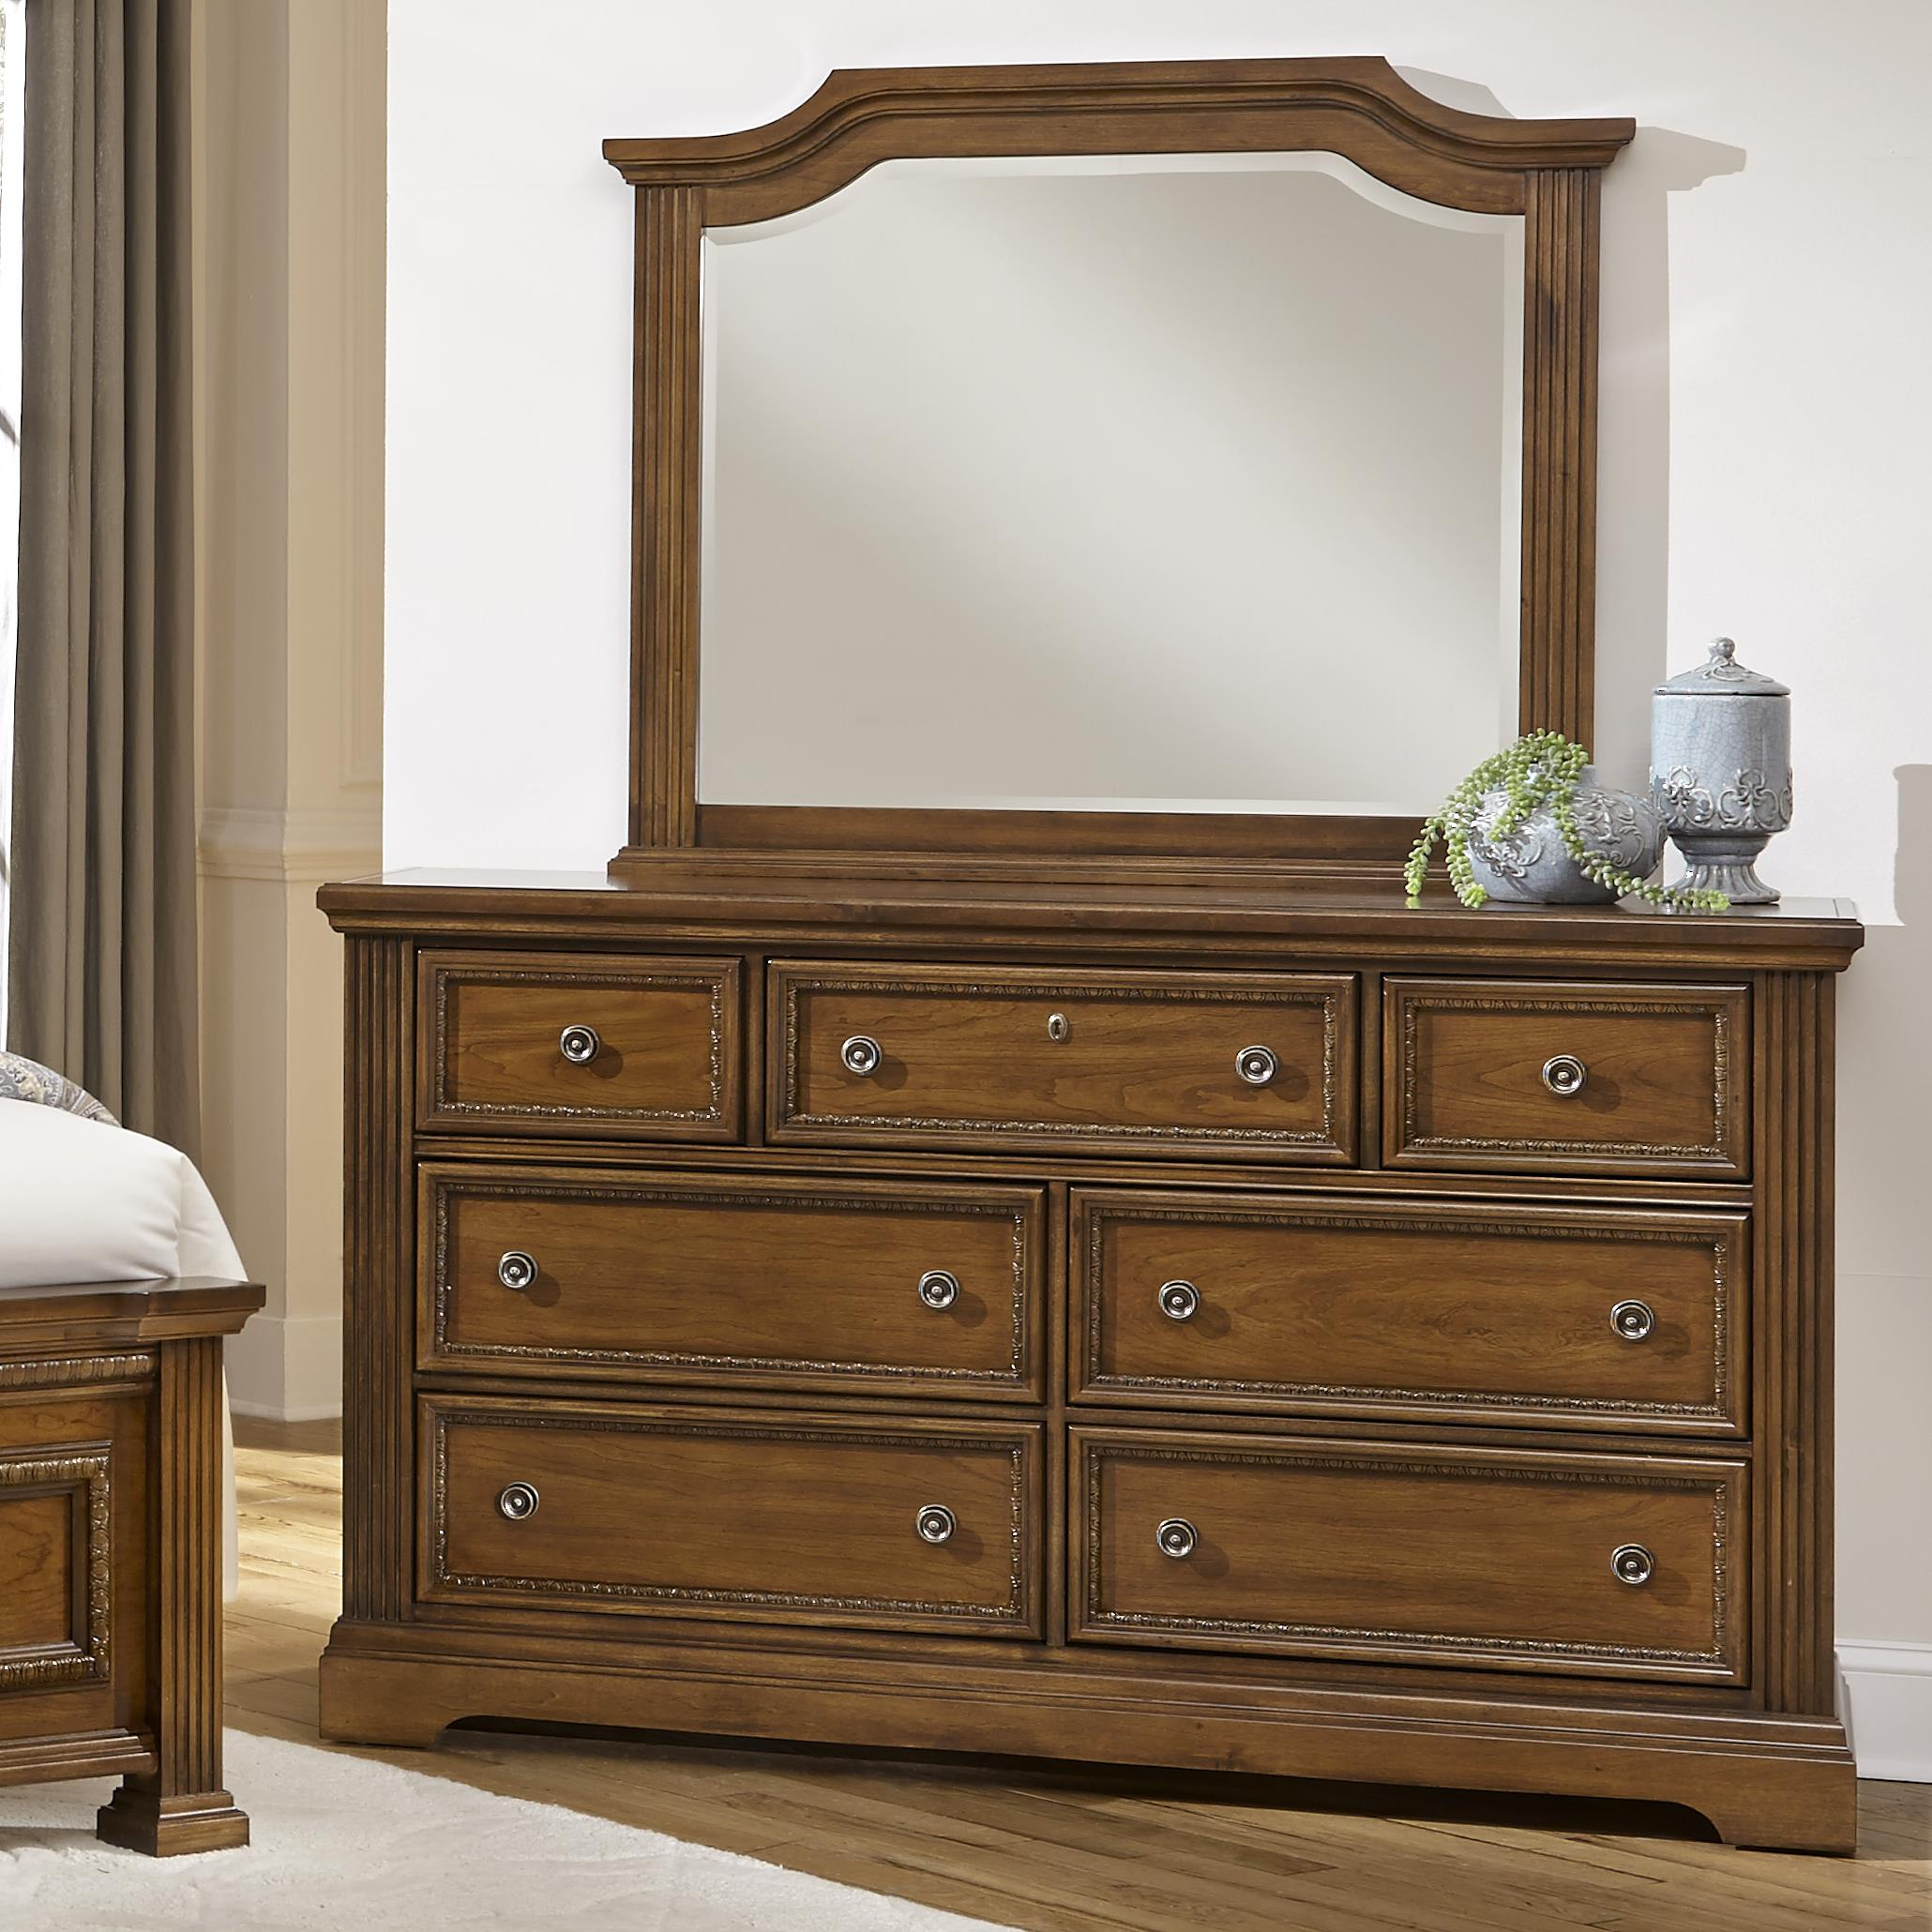 Vaughan Bassett Affinity Dresser & Arch Mirror - Item Number: 562-002+447